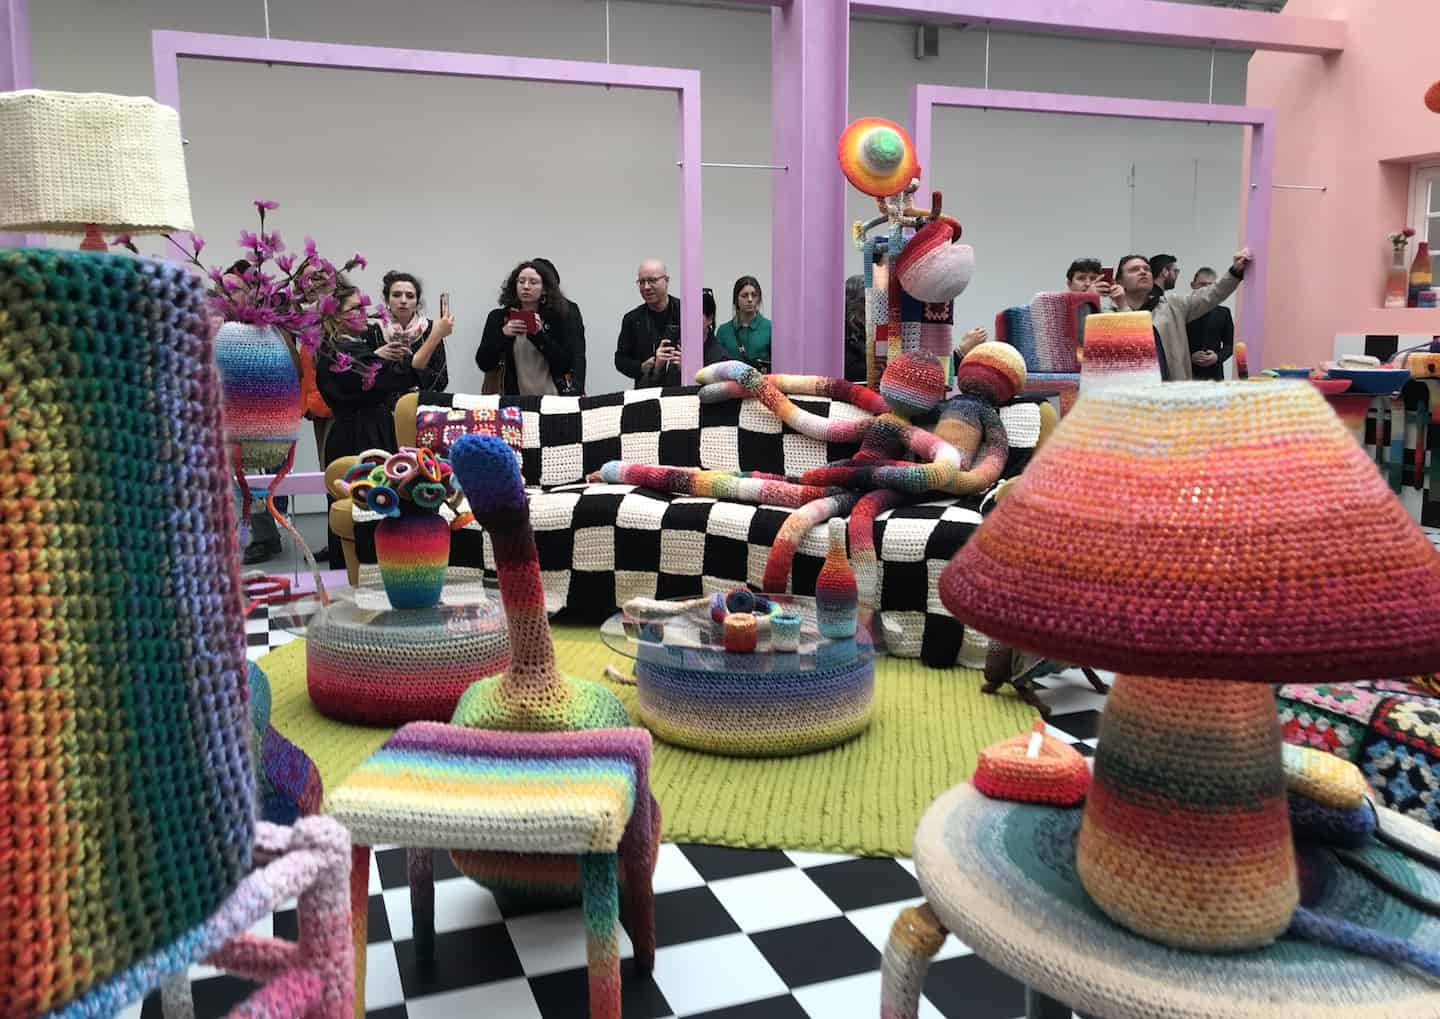 Missoni colourful knits by Alessandra Roved at milan design week MDW 2019